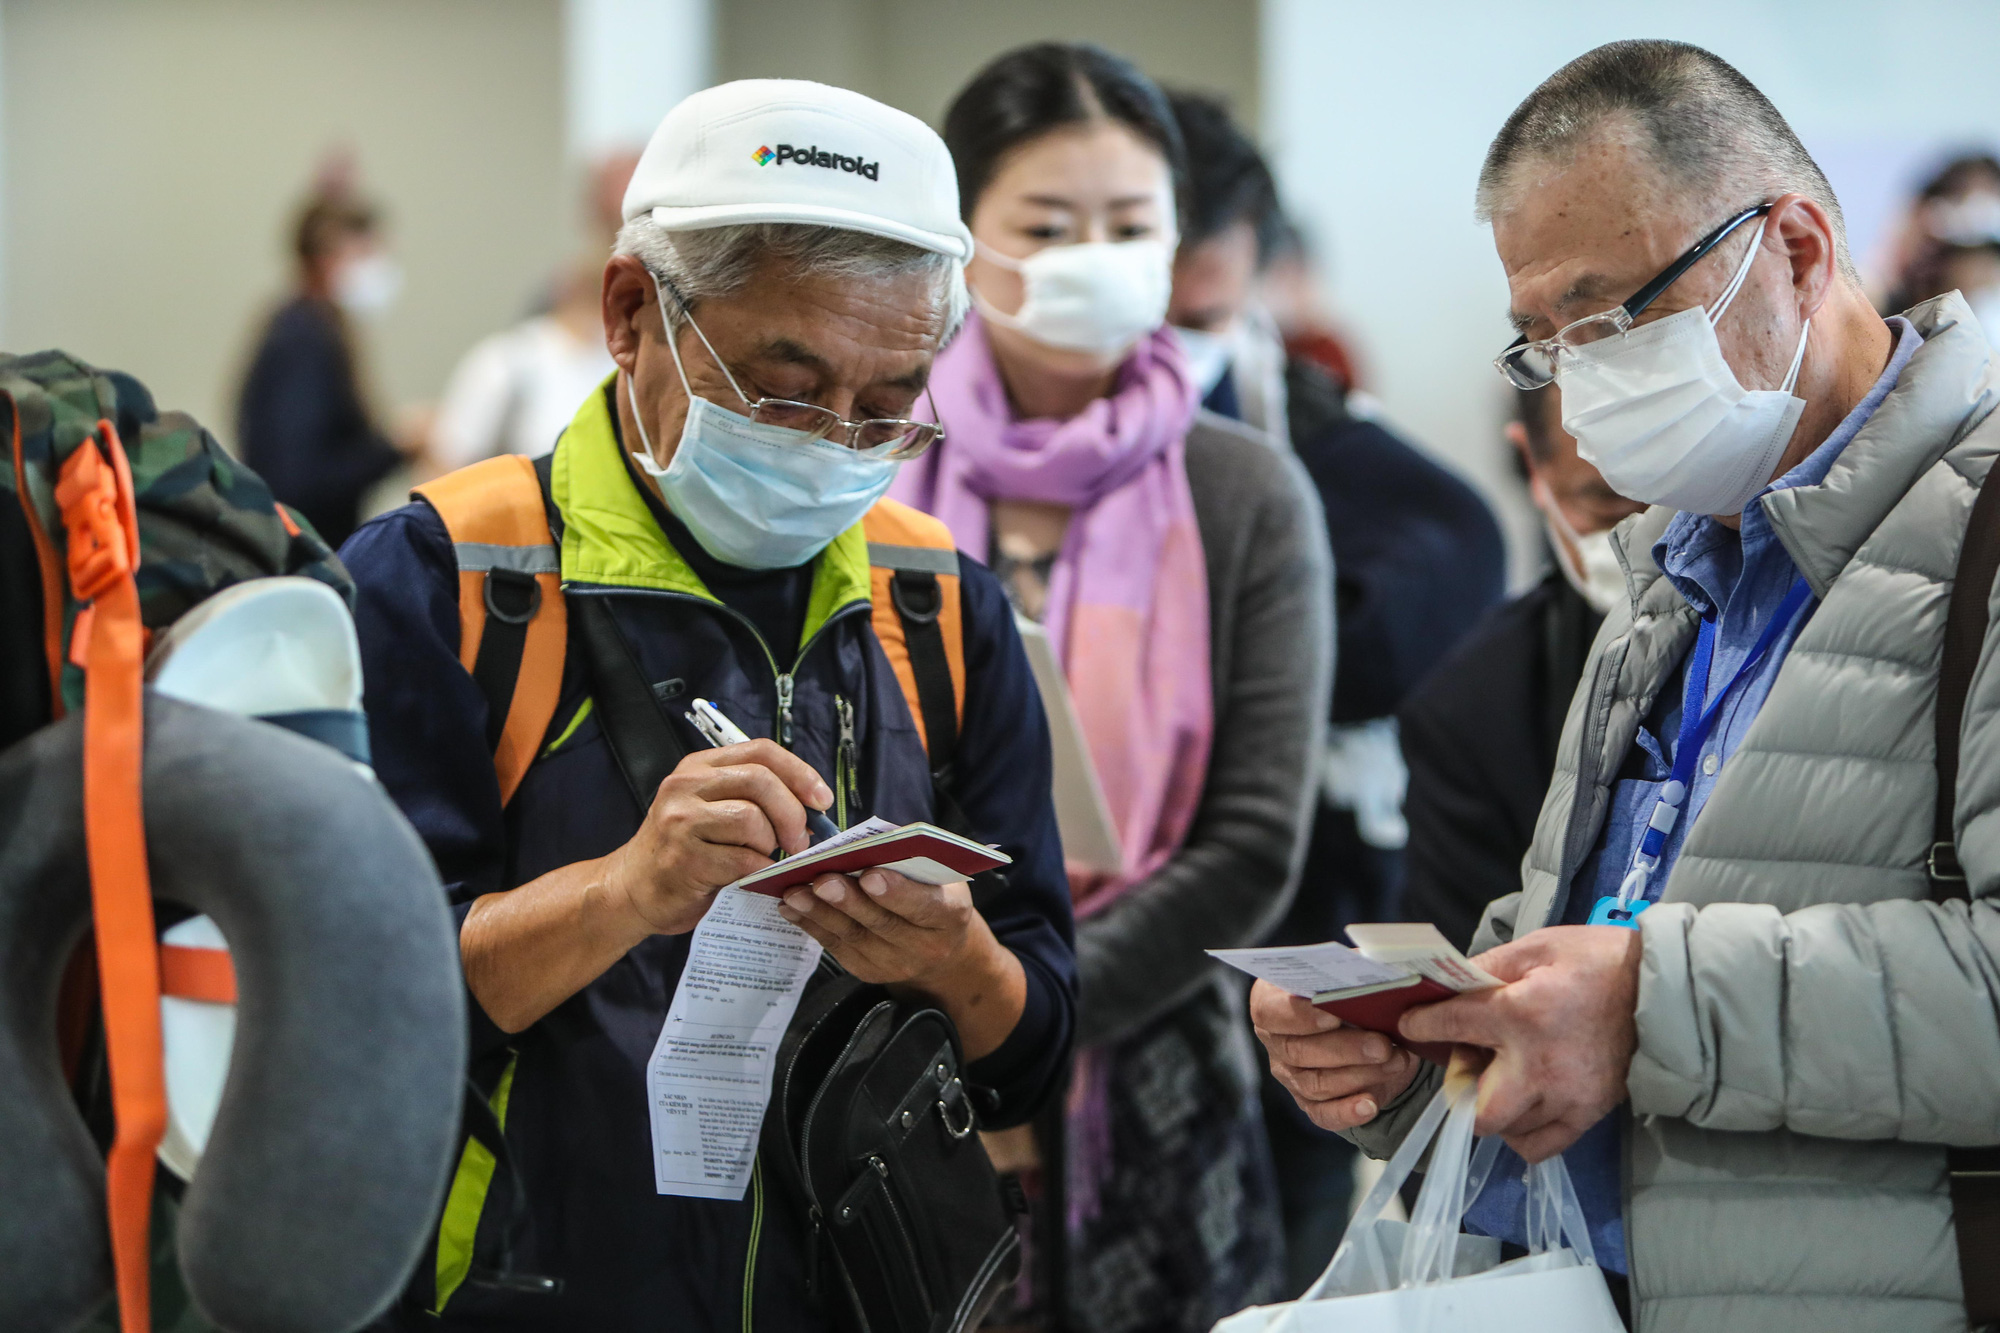 Vietnam confirms 3 new COVID-19 cases, all linked to patient returning from US